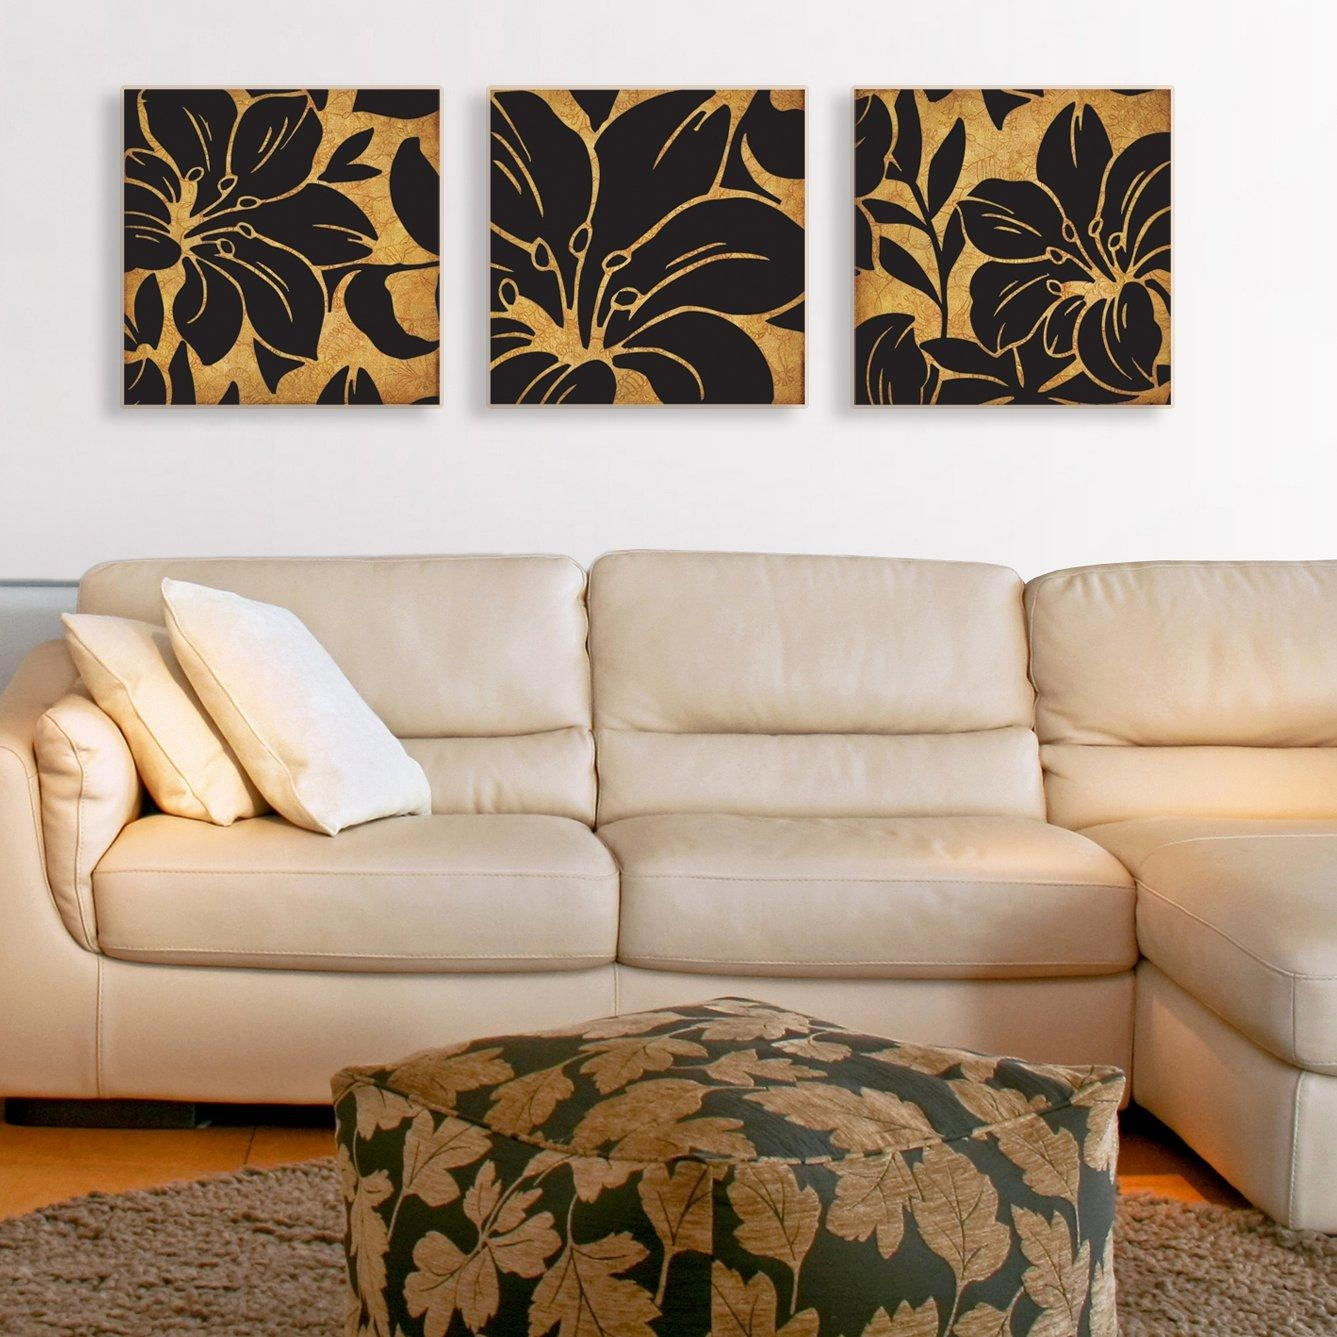 3 Piece Canvas Wall Art | Roselawnlutheran Regarding 3 Piece Floral Canvas Wall Art (View 6 of 20)